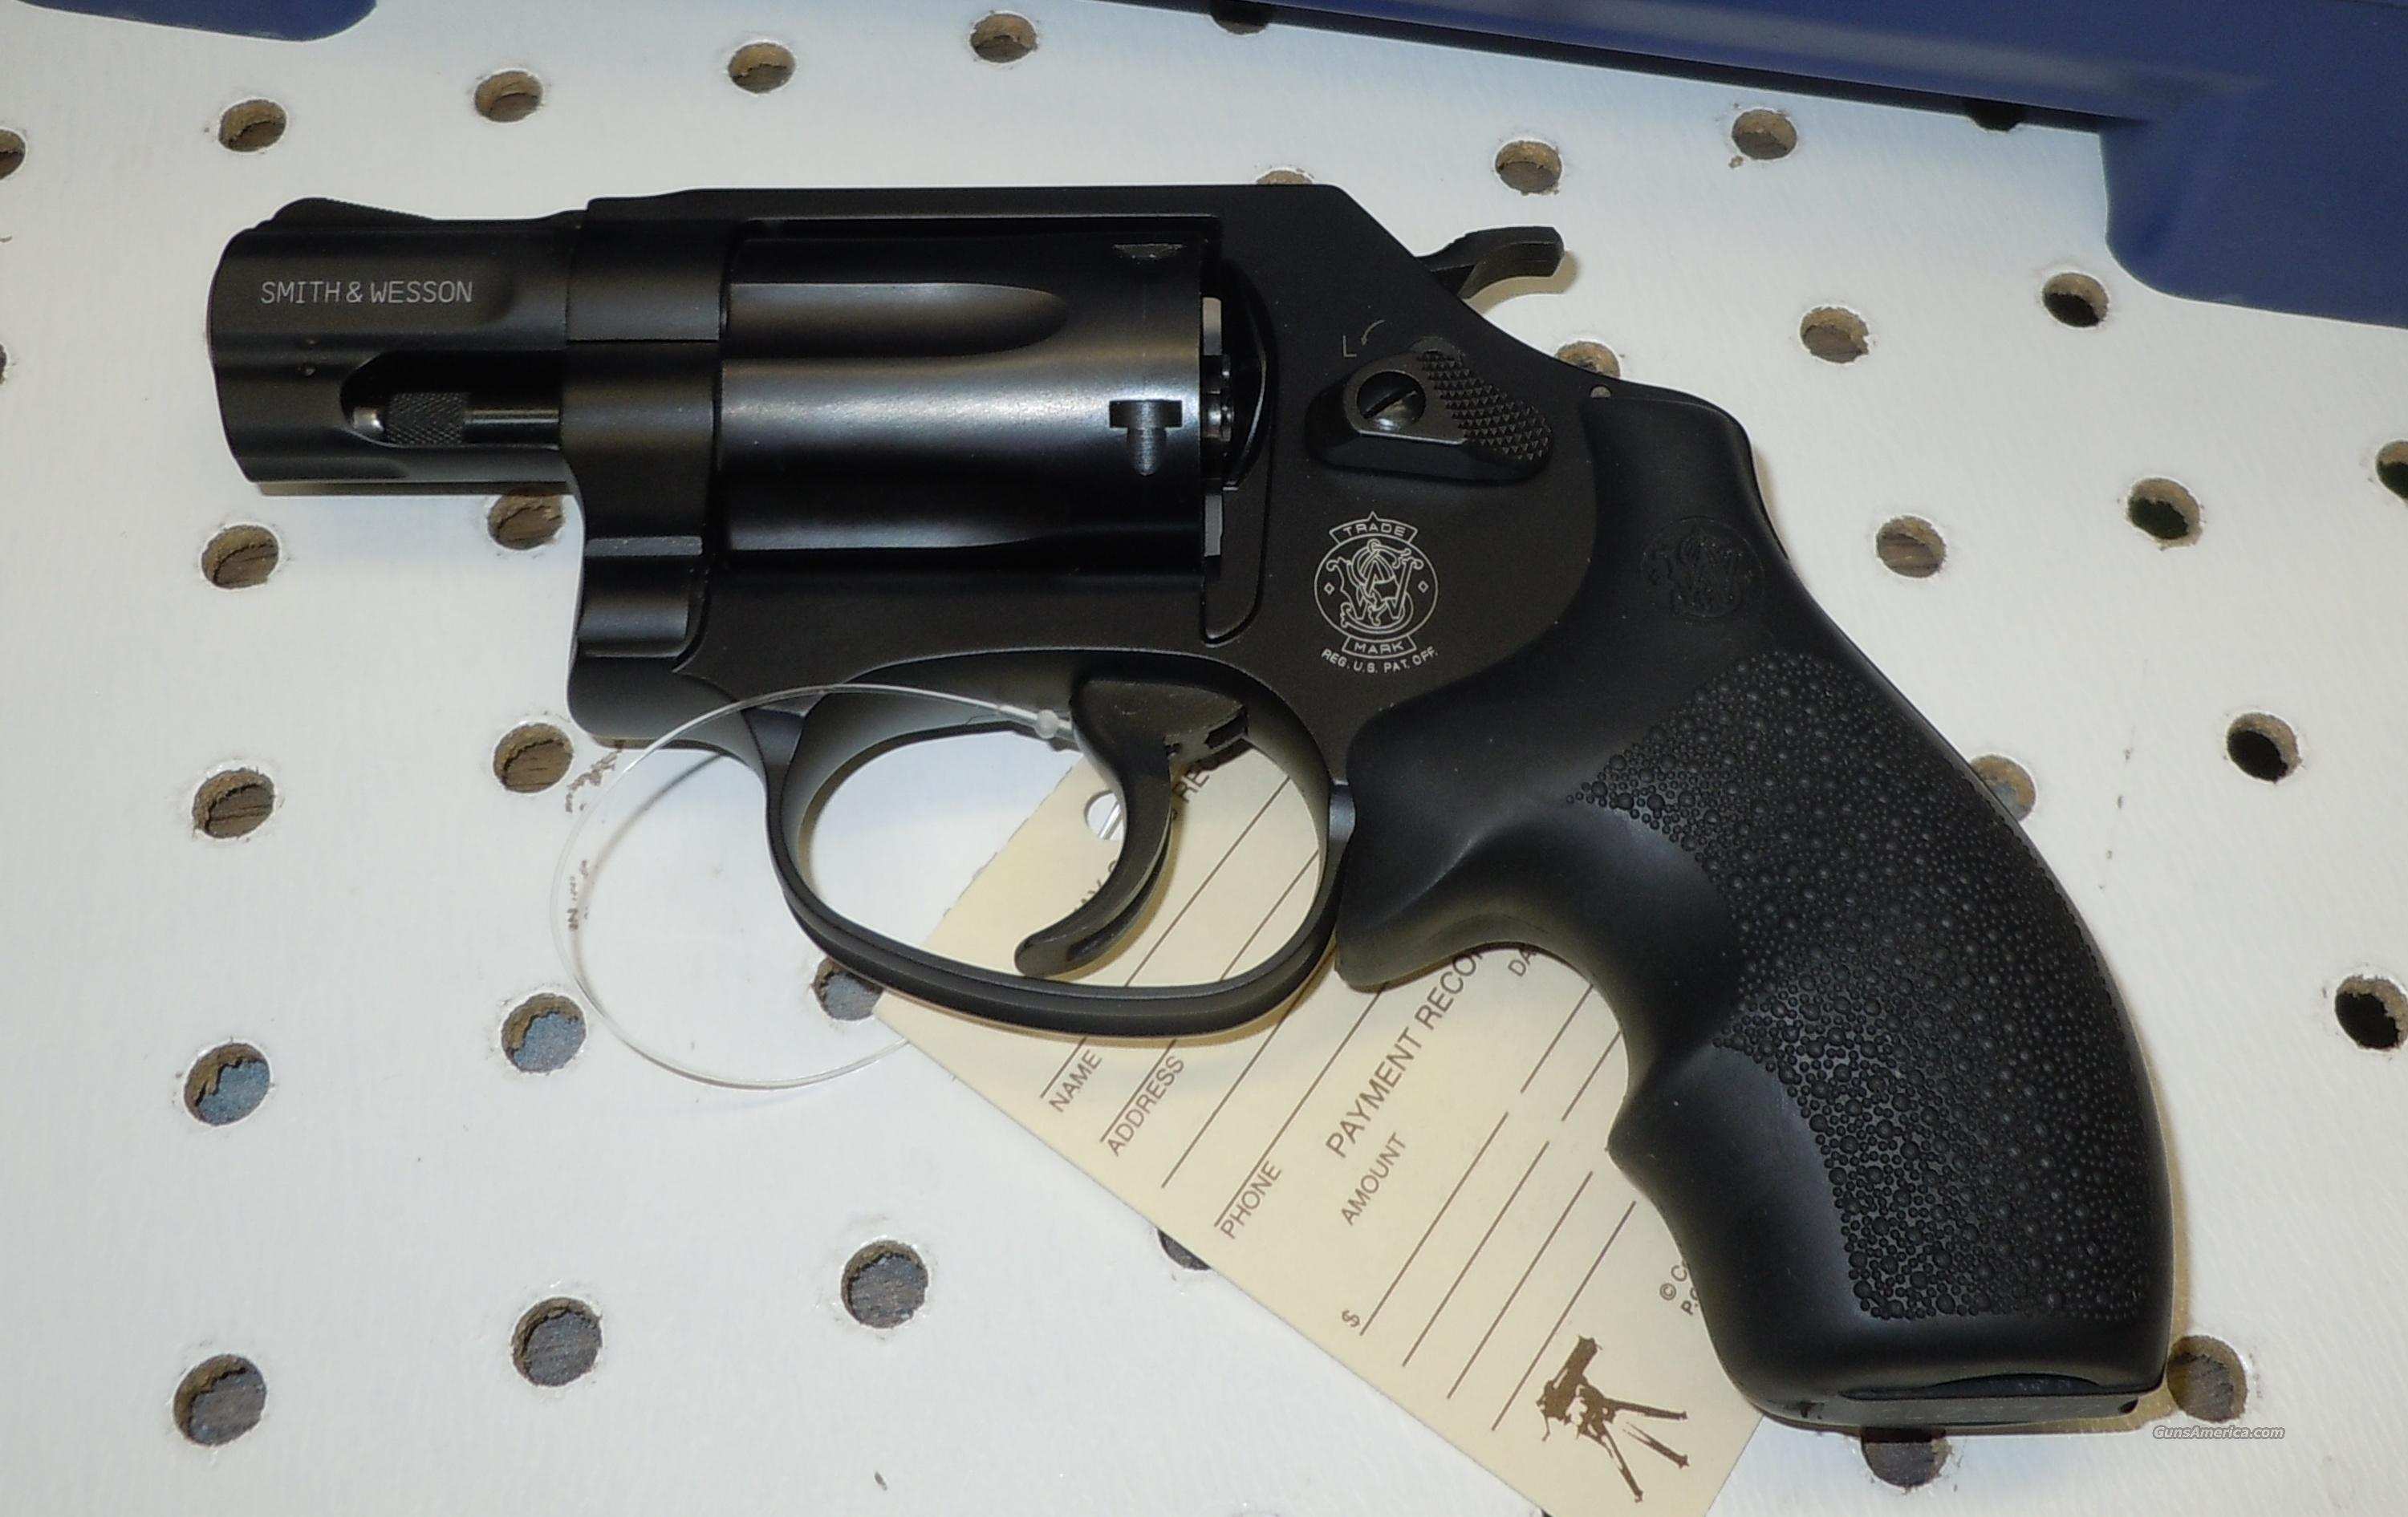 SMITH & WESSON 431 PD 32 H&R MAG J-FRAME 6 SHOT... for sale